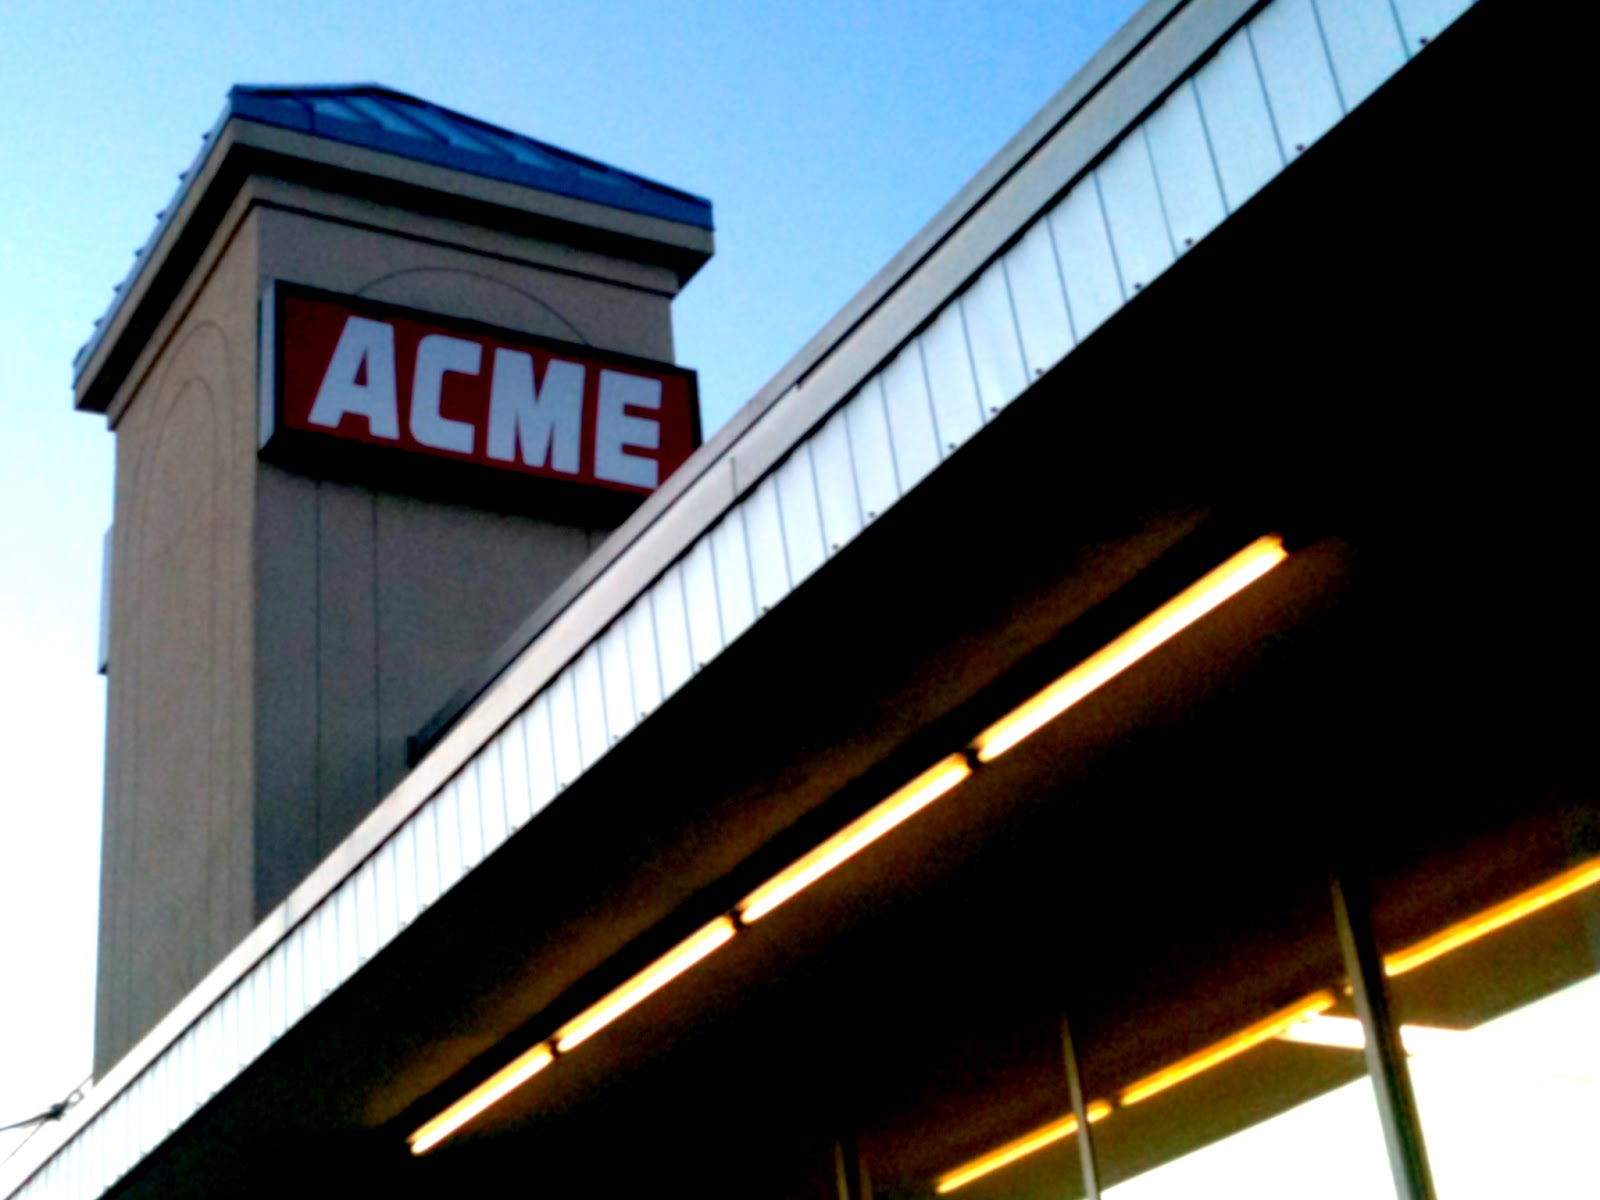 Go see this Acme. Who knows how much longer it will be around. I